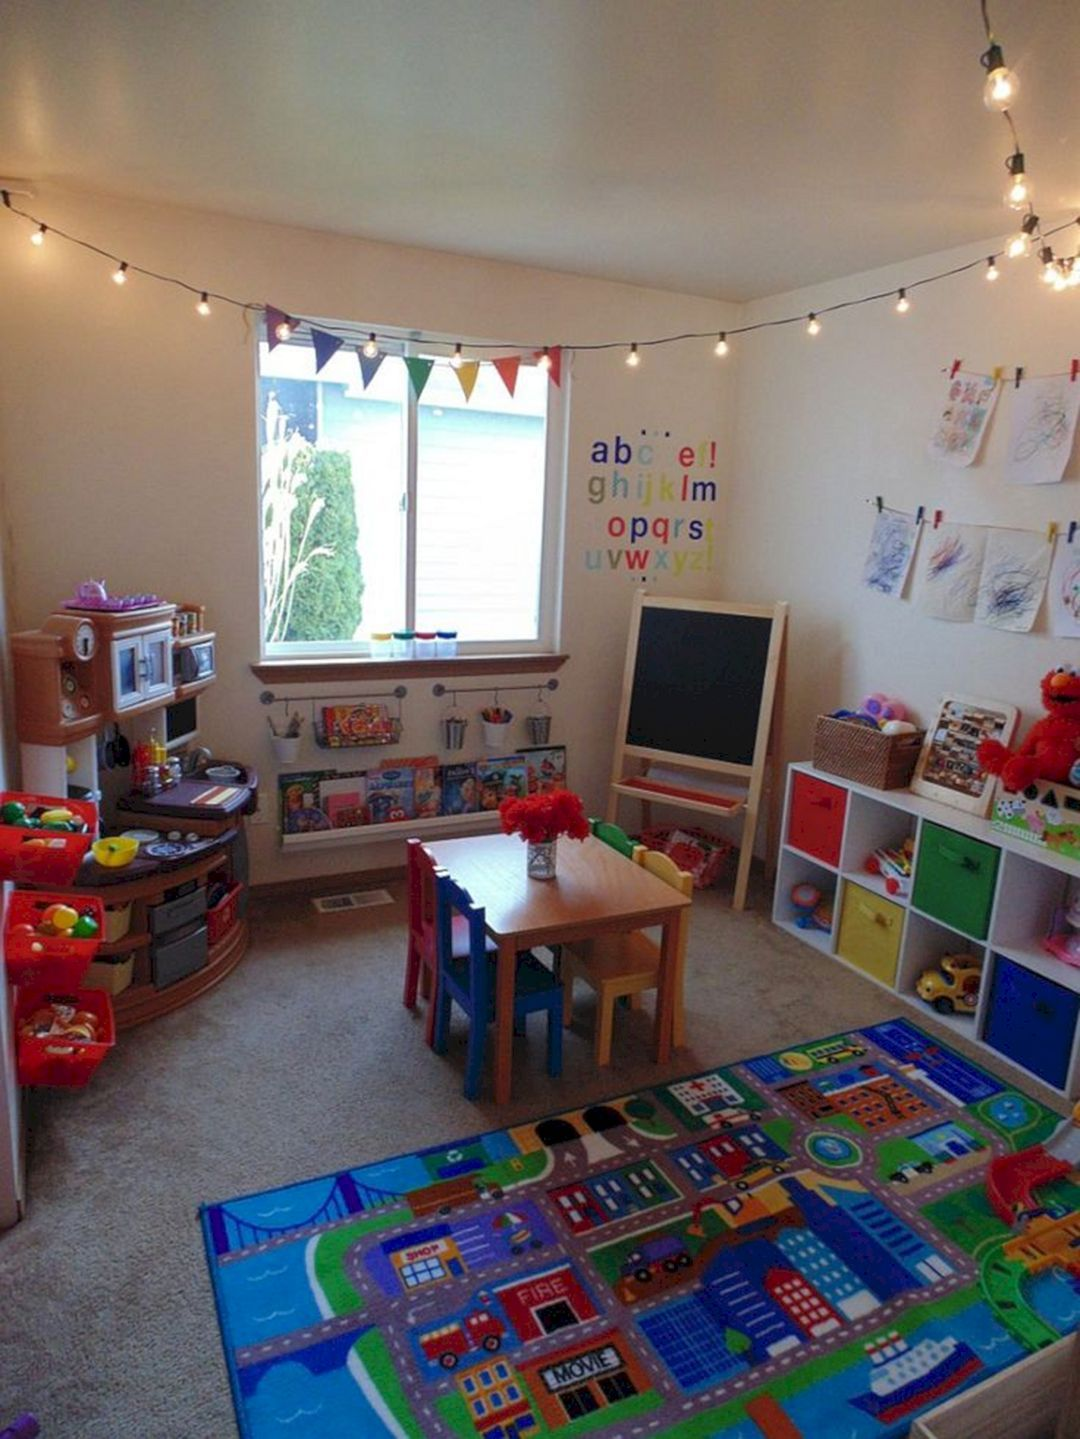 12 Beautiful Kids Play Room Ideas For Small Spaces Freshouz Com